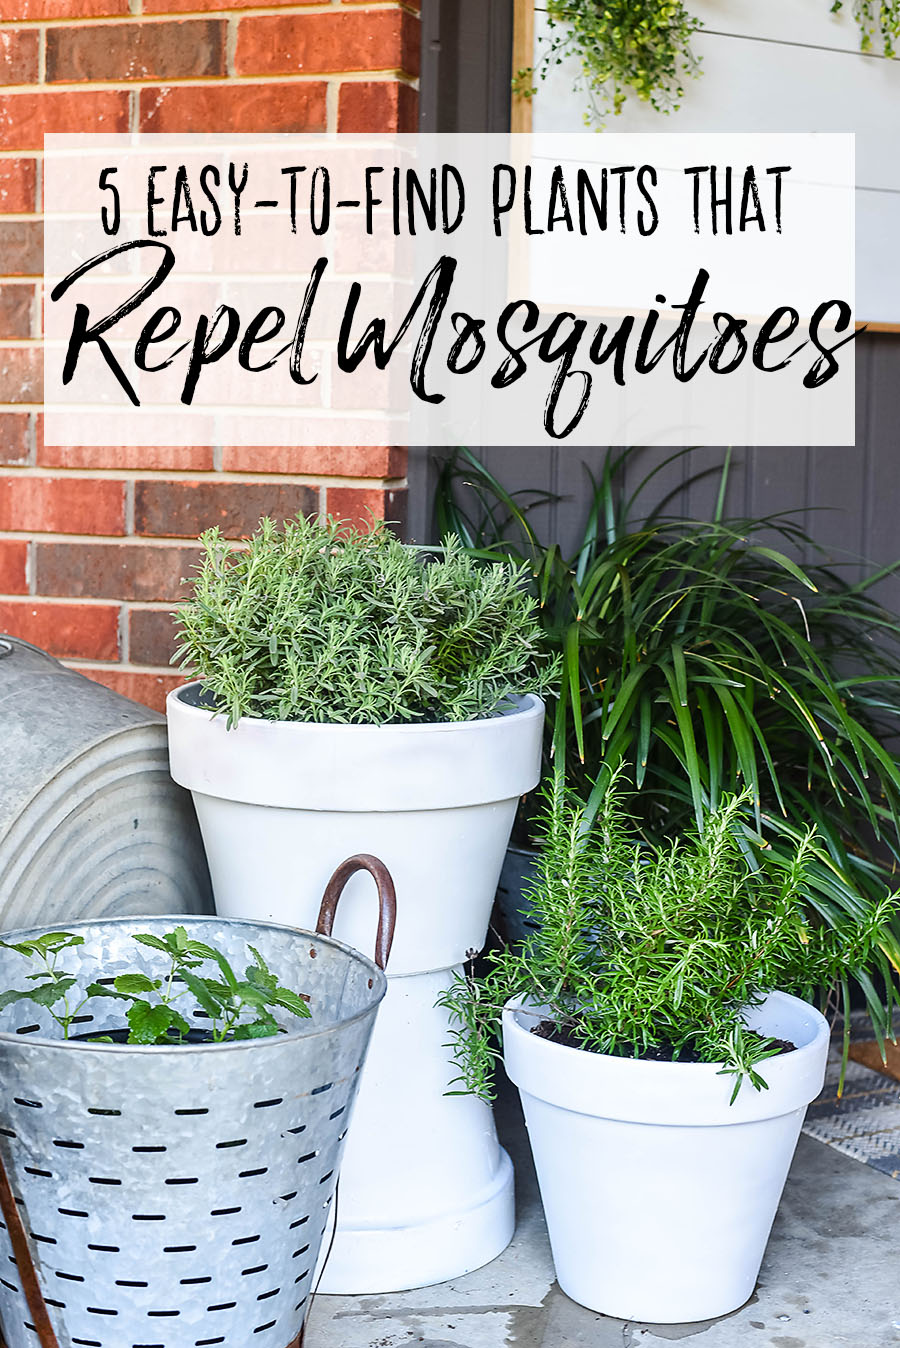 5 Plants That Repel Mosquitoes For Your Front Porch Our Handcrafted Life